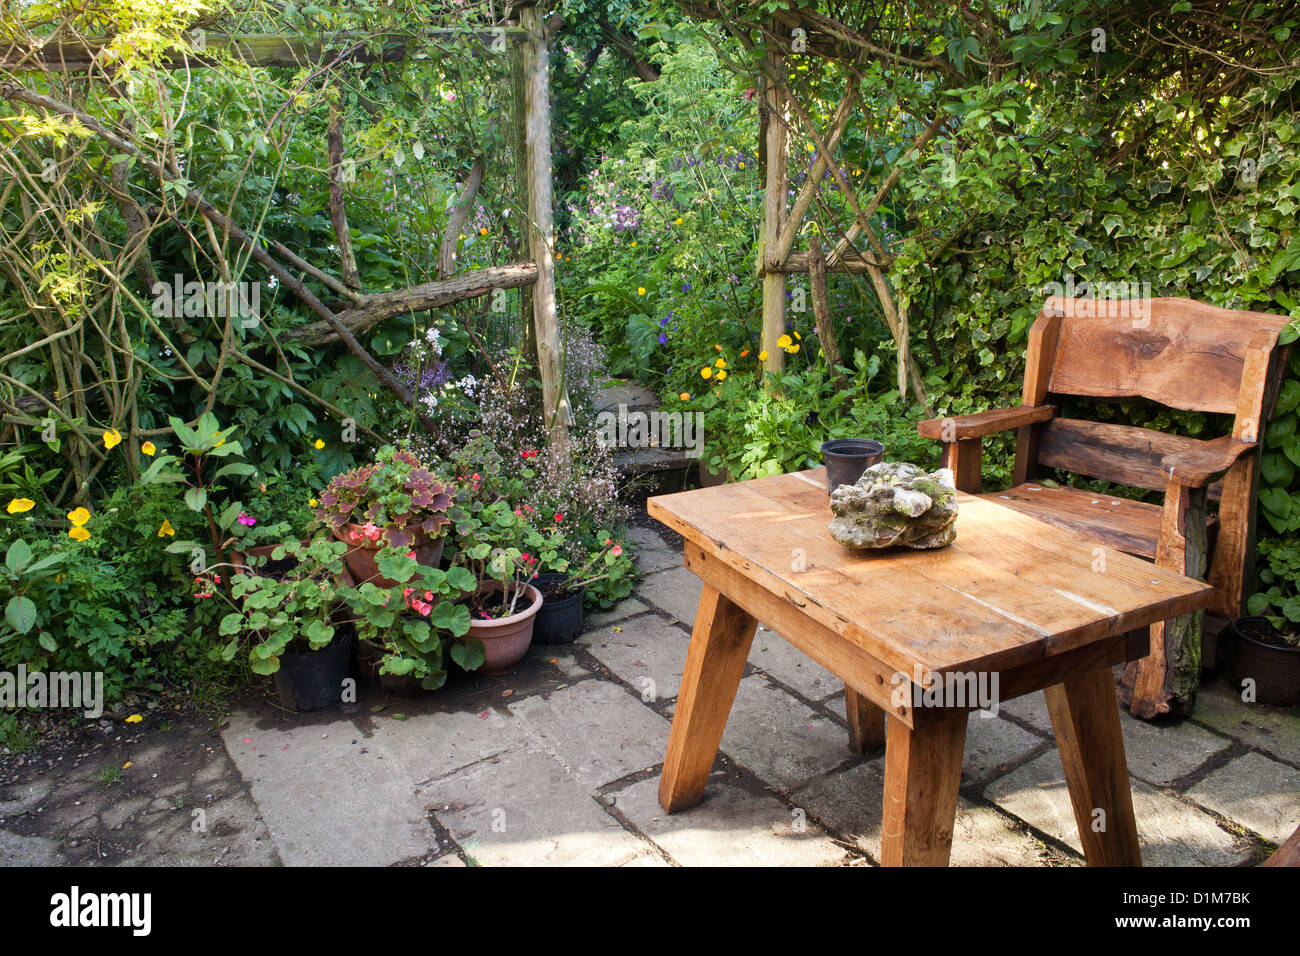 Relaxing area on a patio with rustic garden furniture